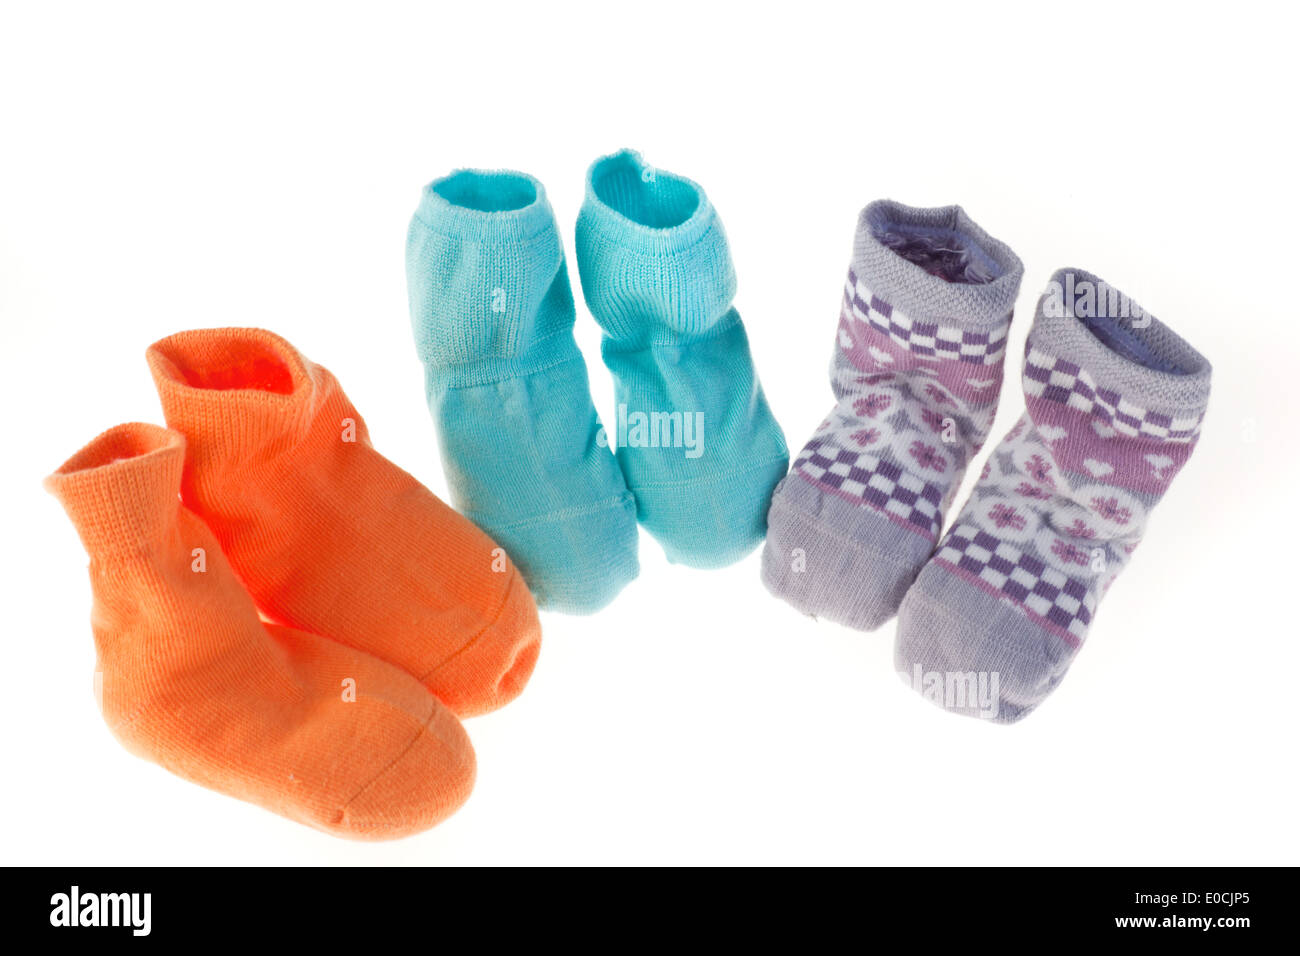 Children socks isolated on white background, Kinder Socken isoliert auf weissem Hintergrund - Stock Image